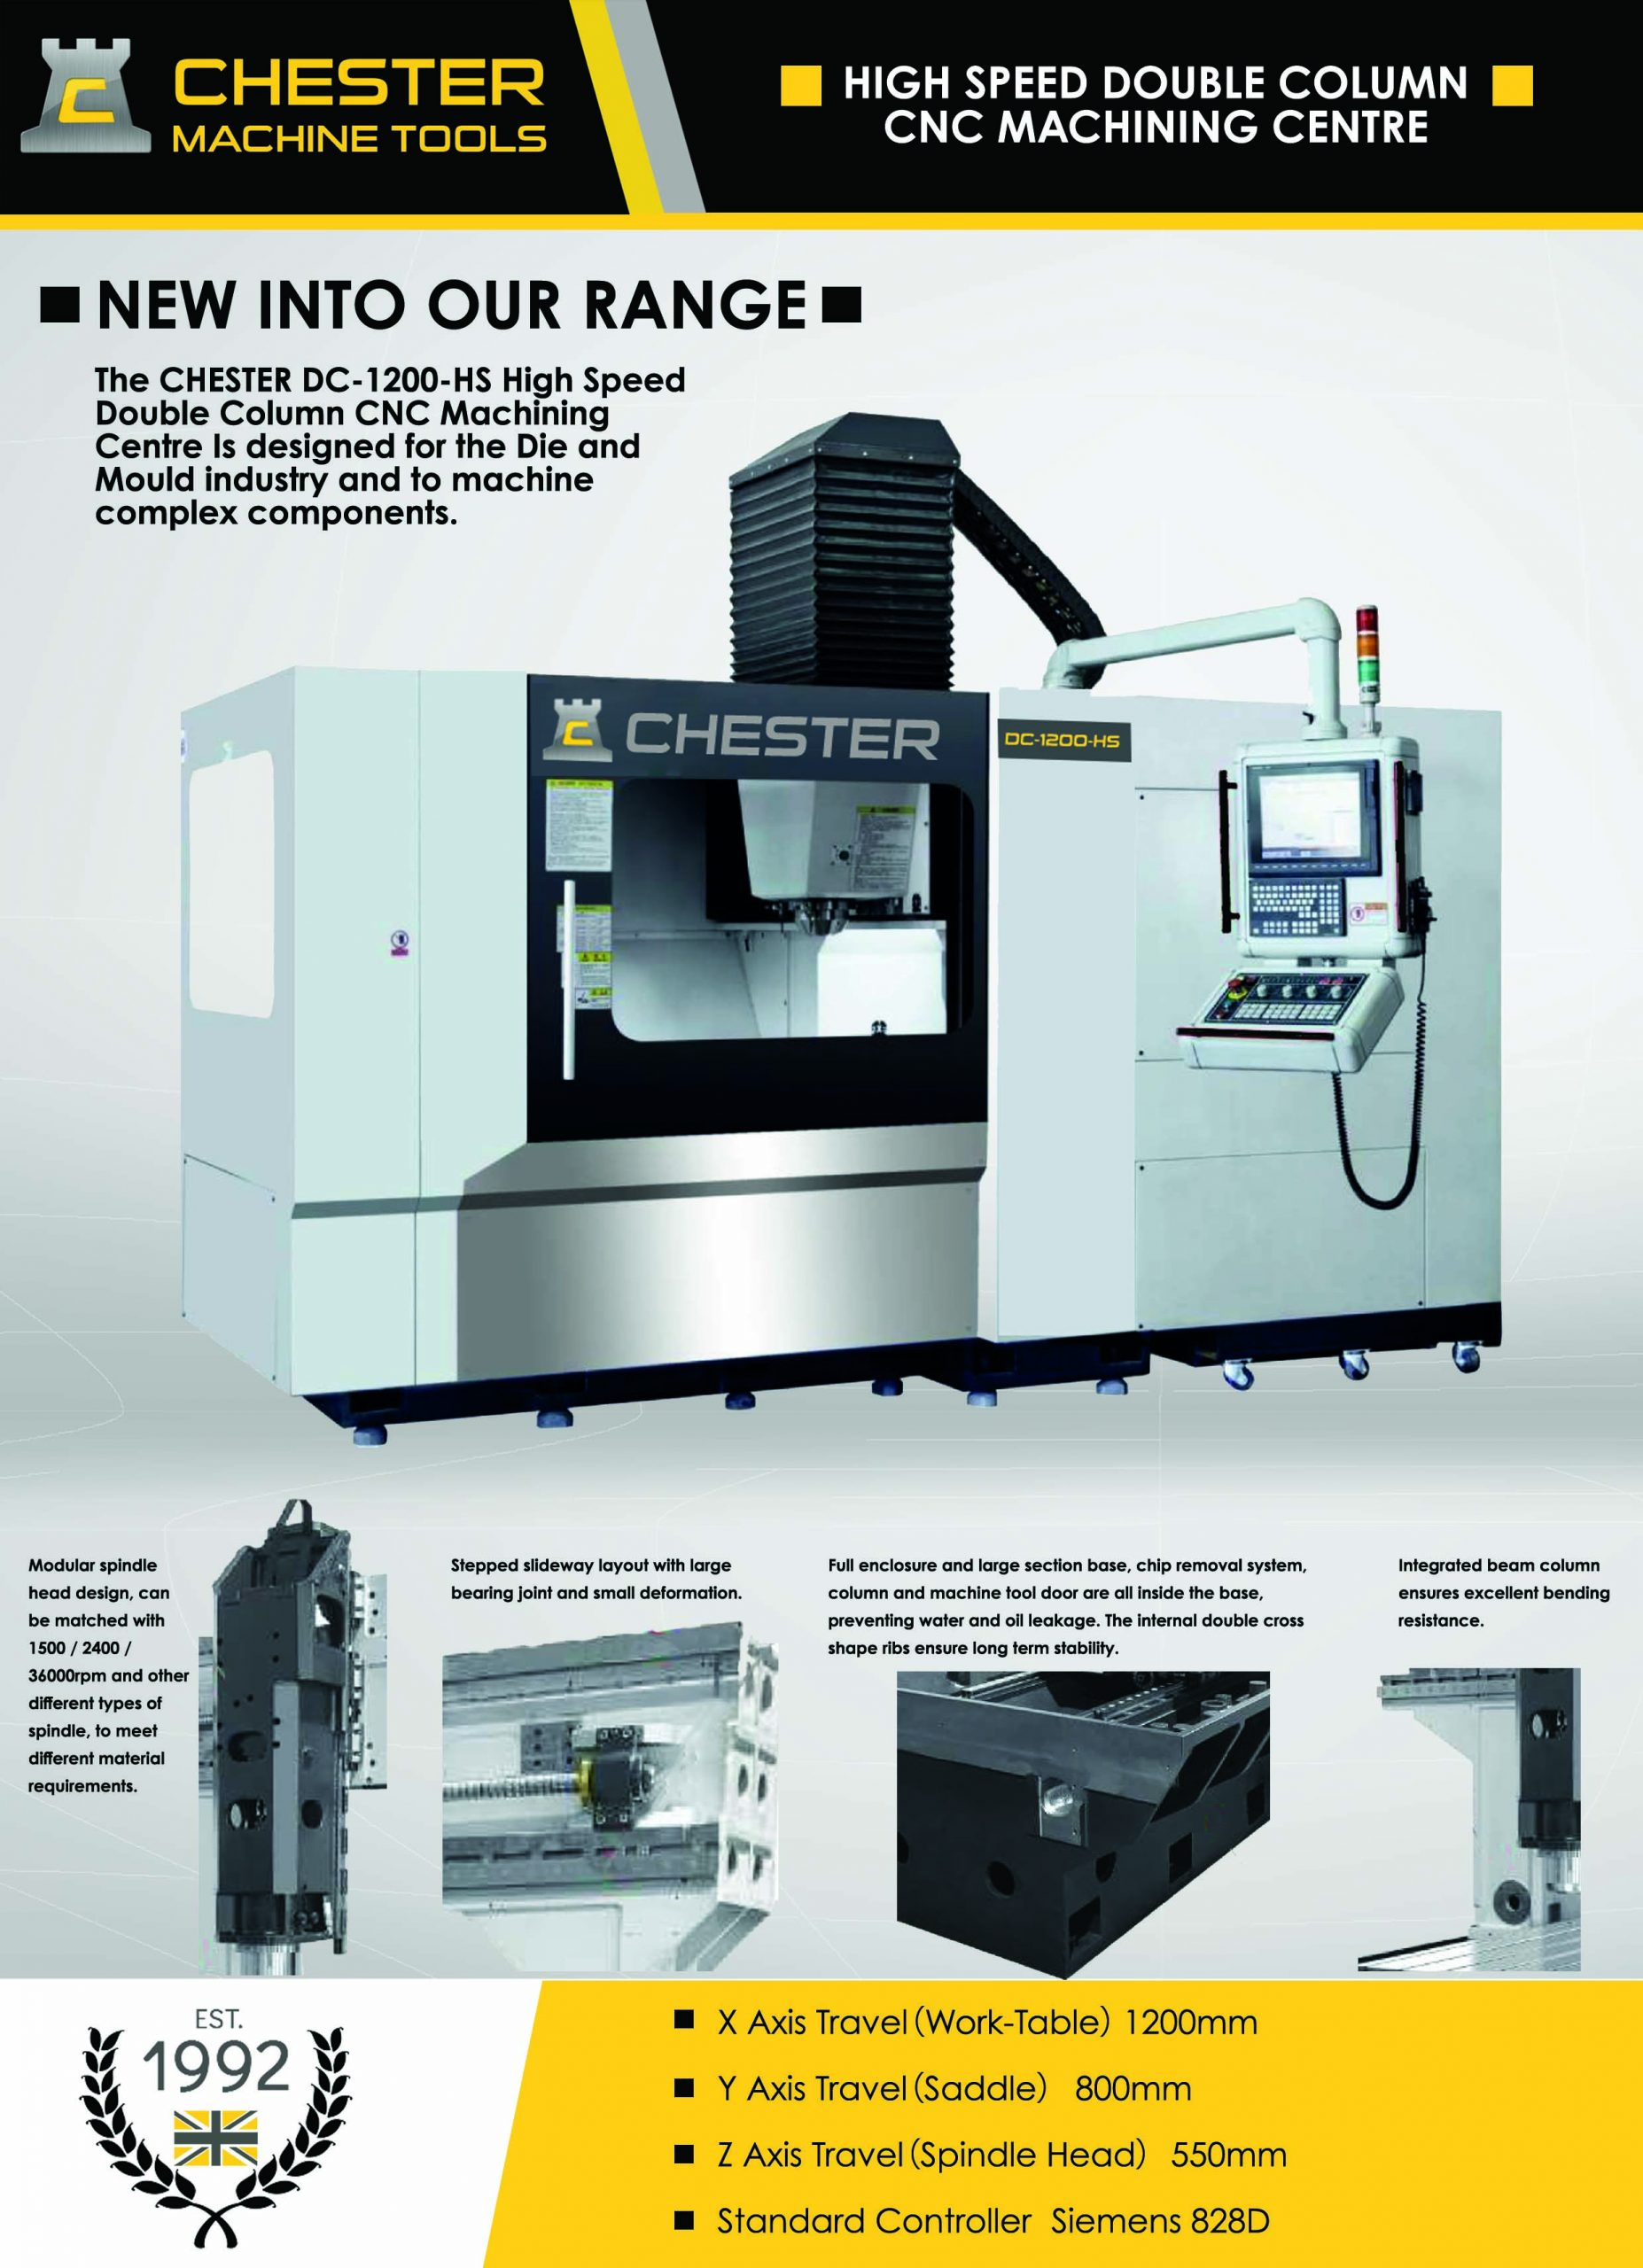 High Performance DC Series CNC Machining Centres